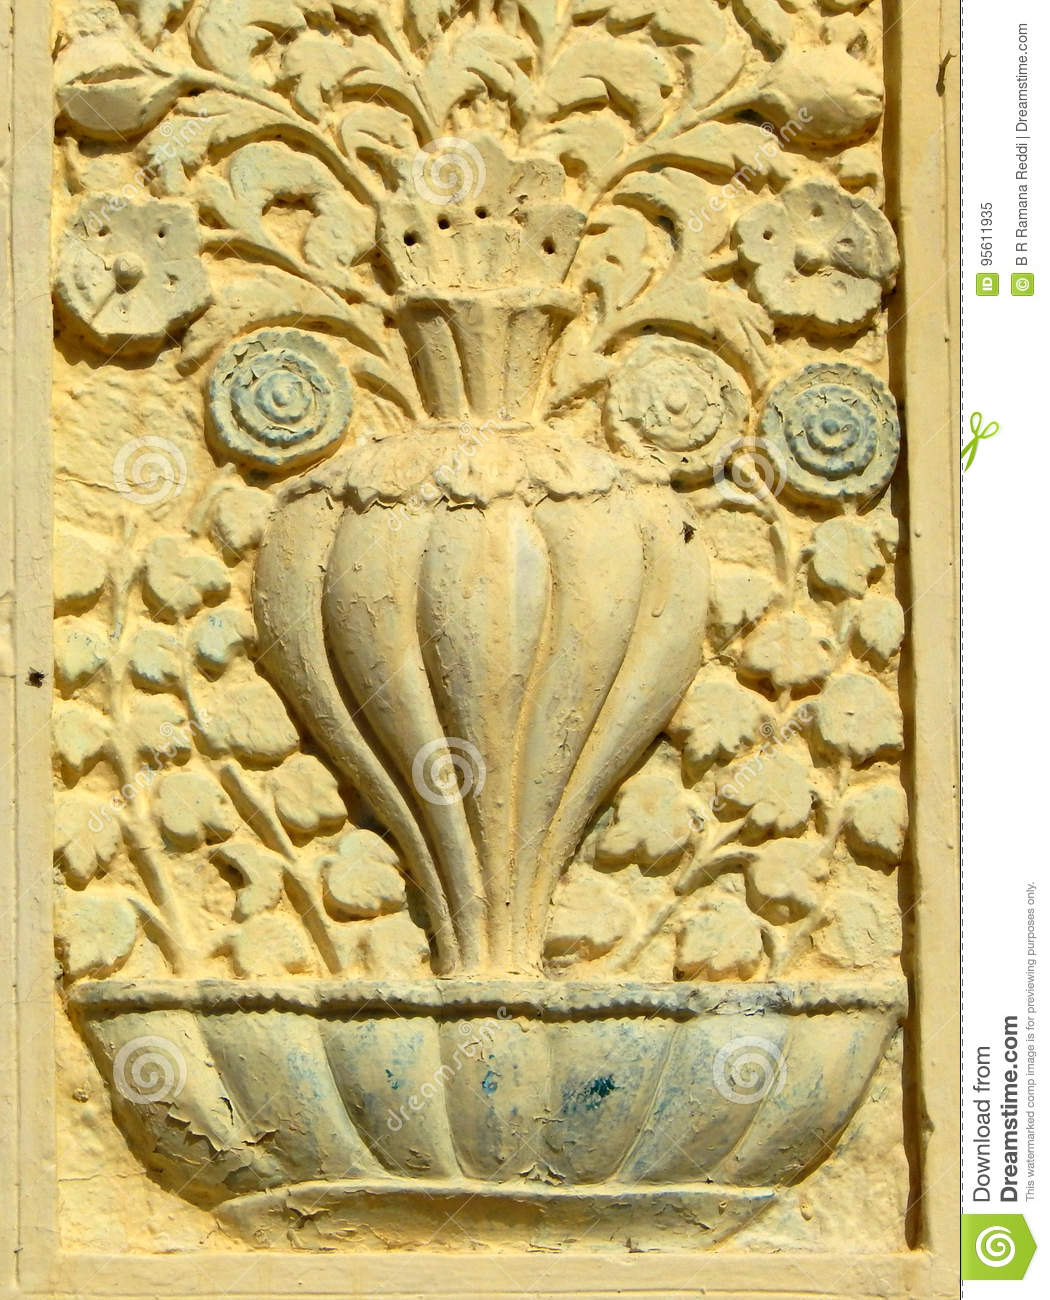 Wall Art And Floral Architecture Of 200 Year Old Temple Stock Image ...